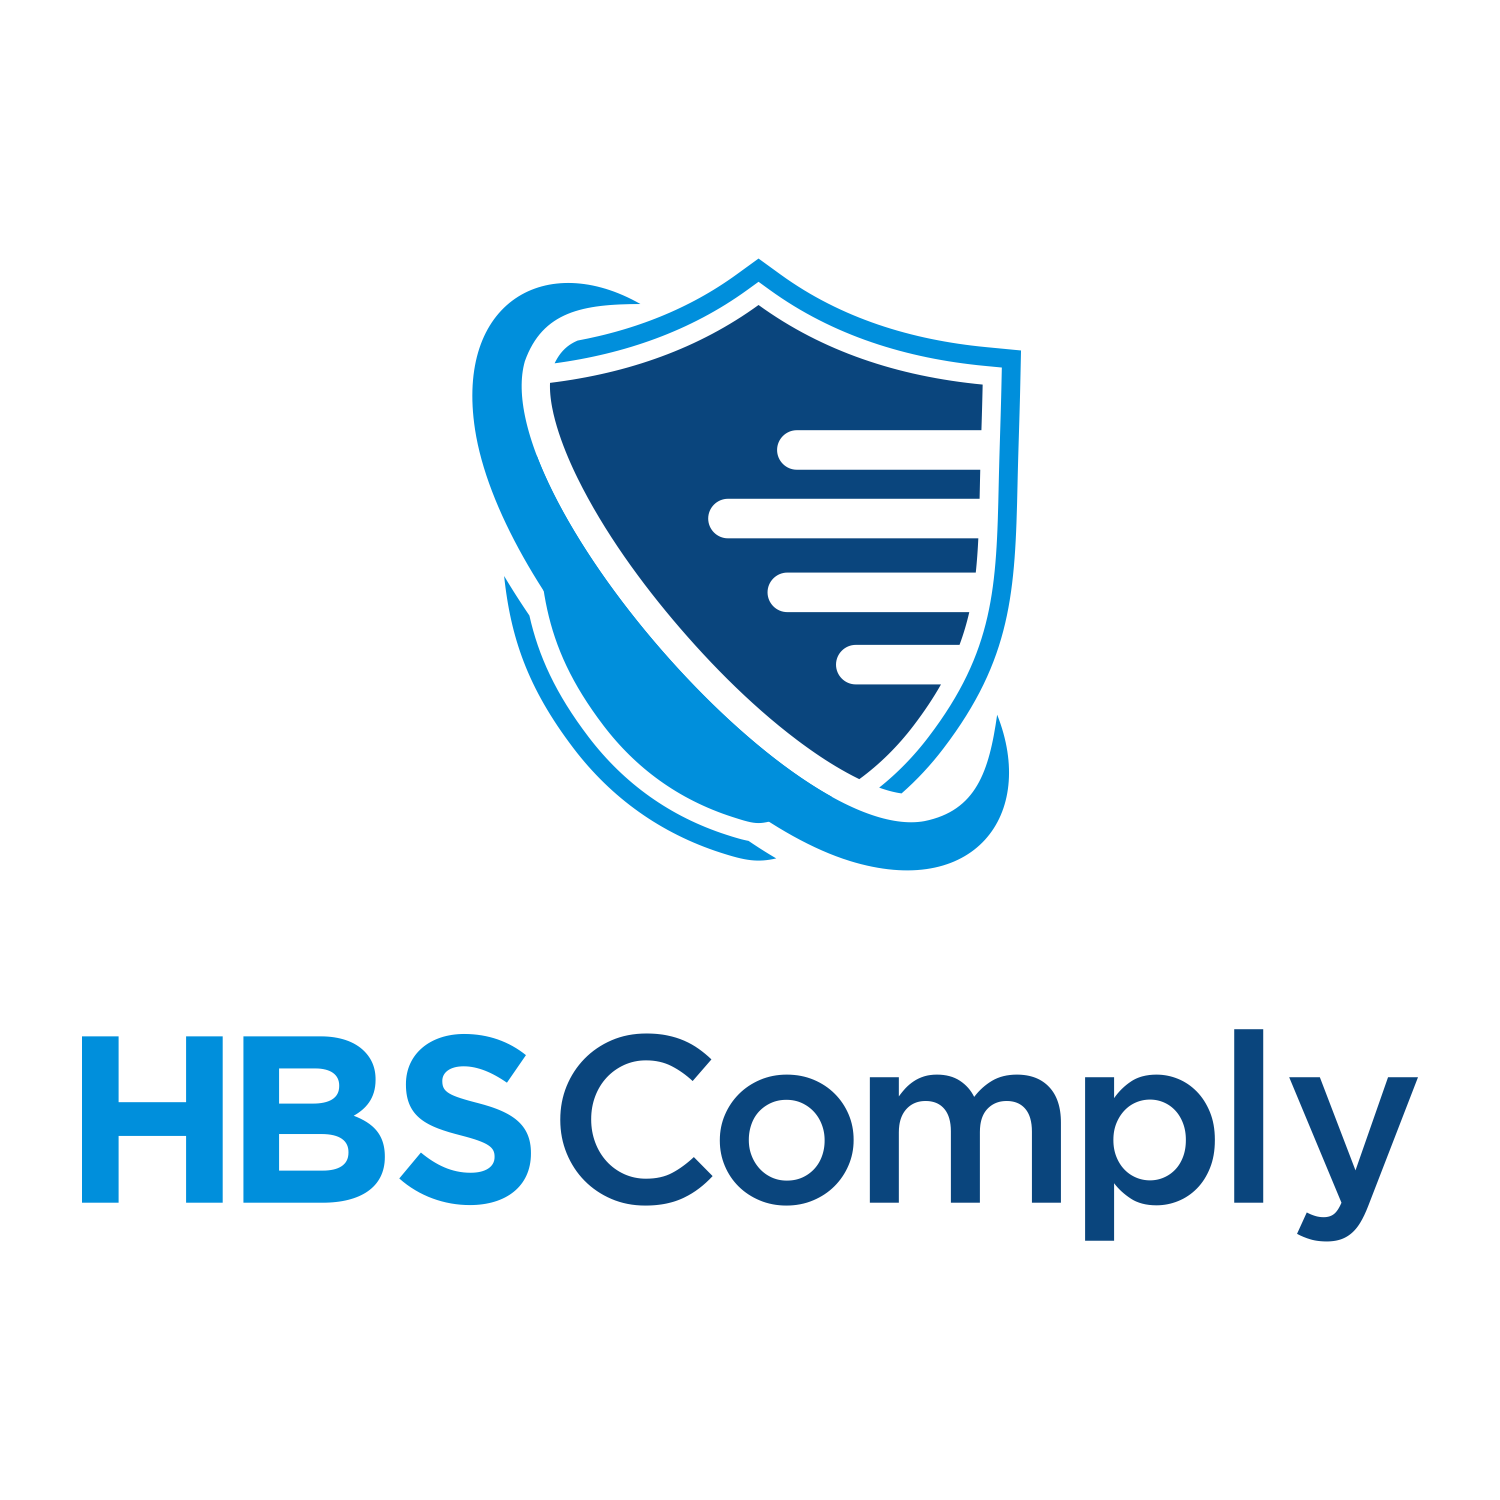 HBSComply